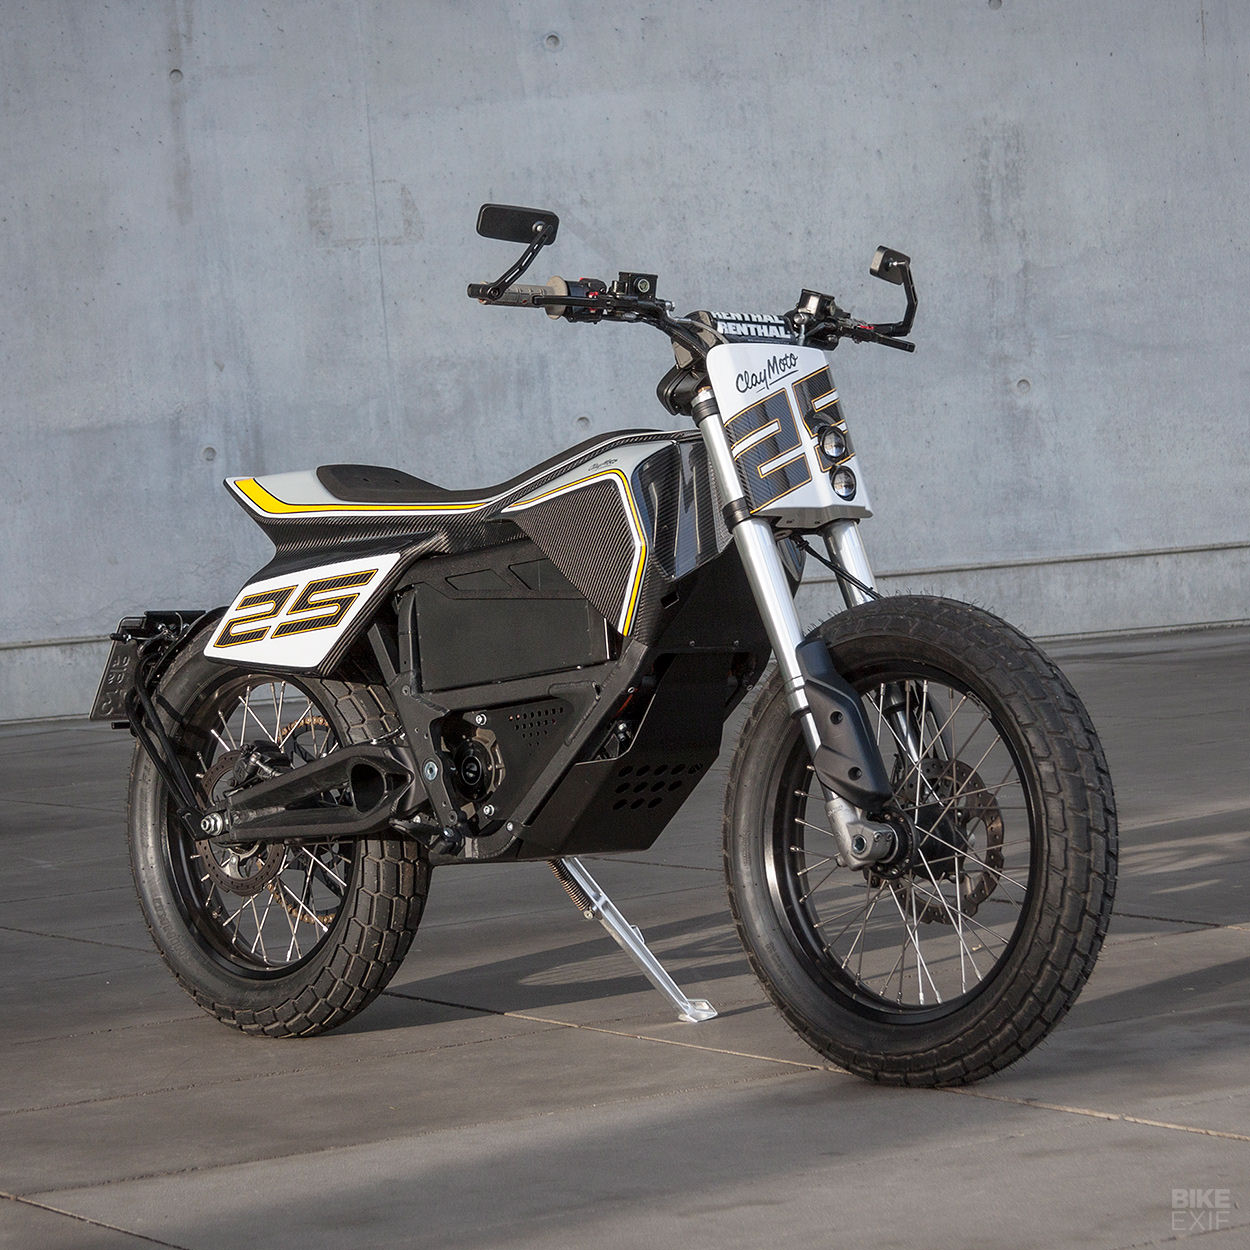 Custom Zero FX electric flat tracker designed by an automotive sculptor